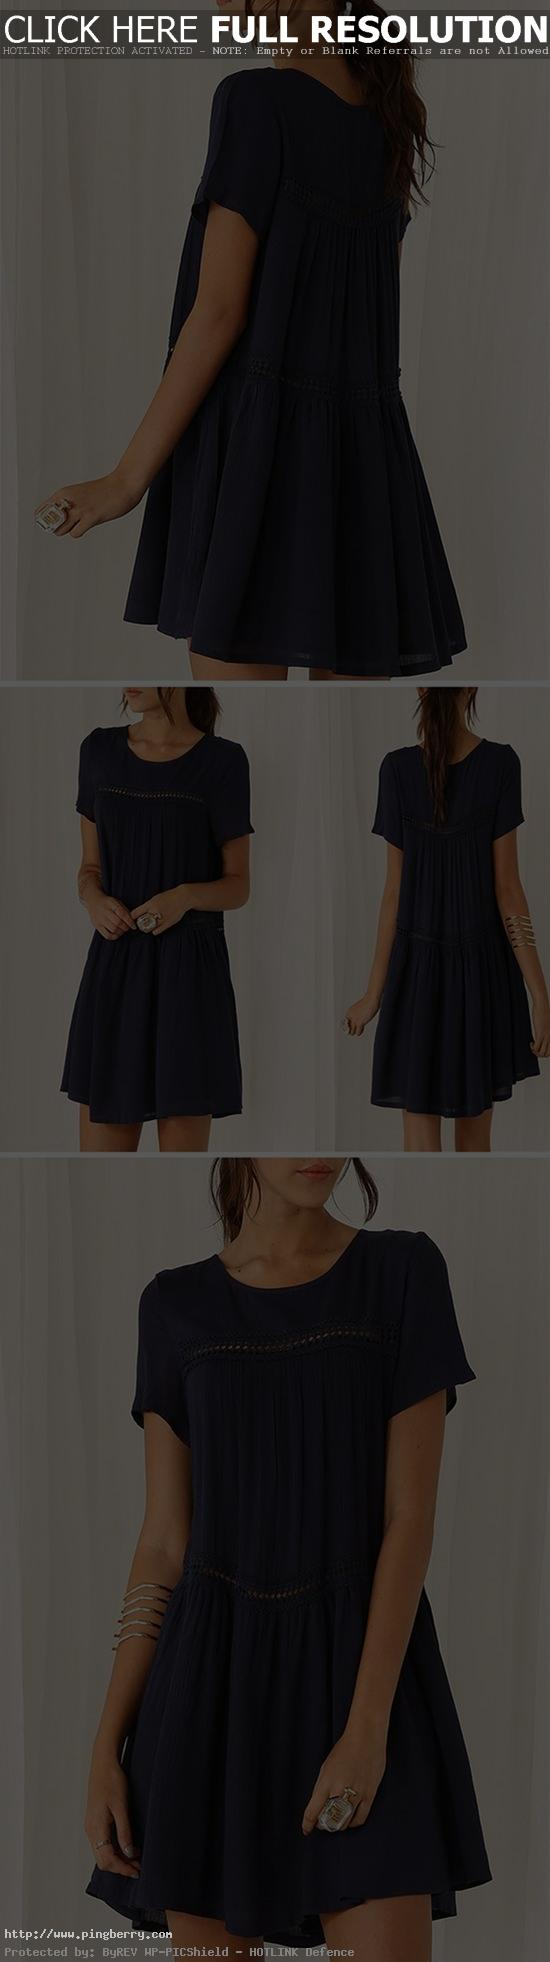 Those casual dresses are stunning yet simple. Add them to your collection for ev...